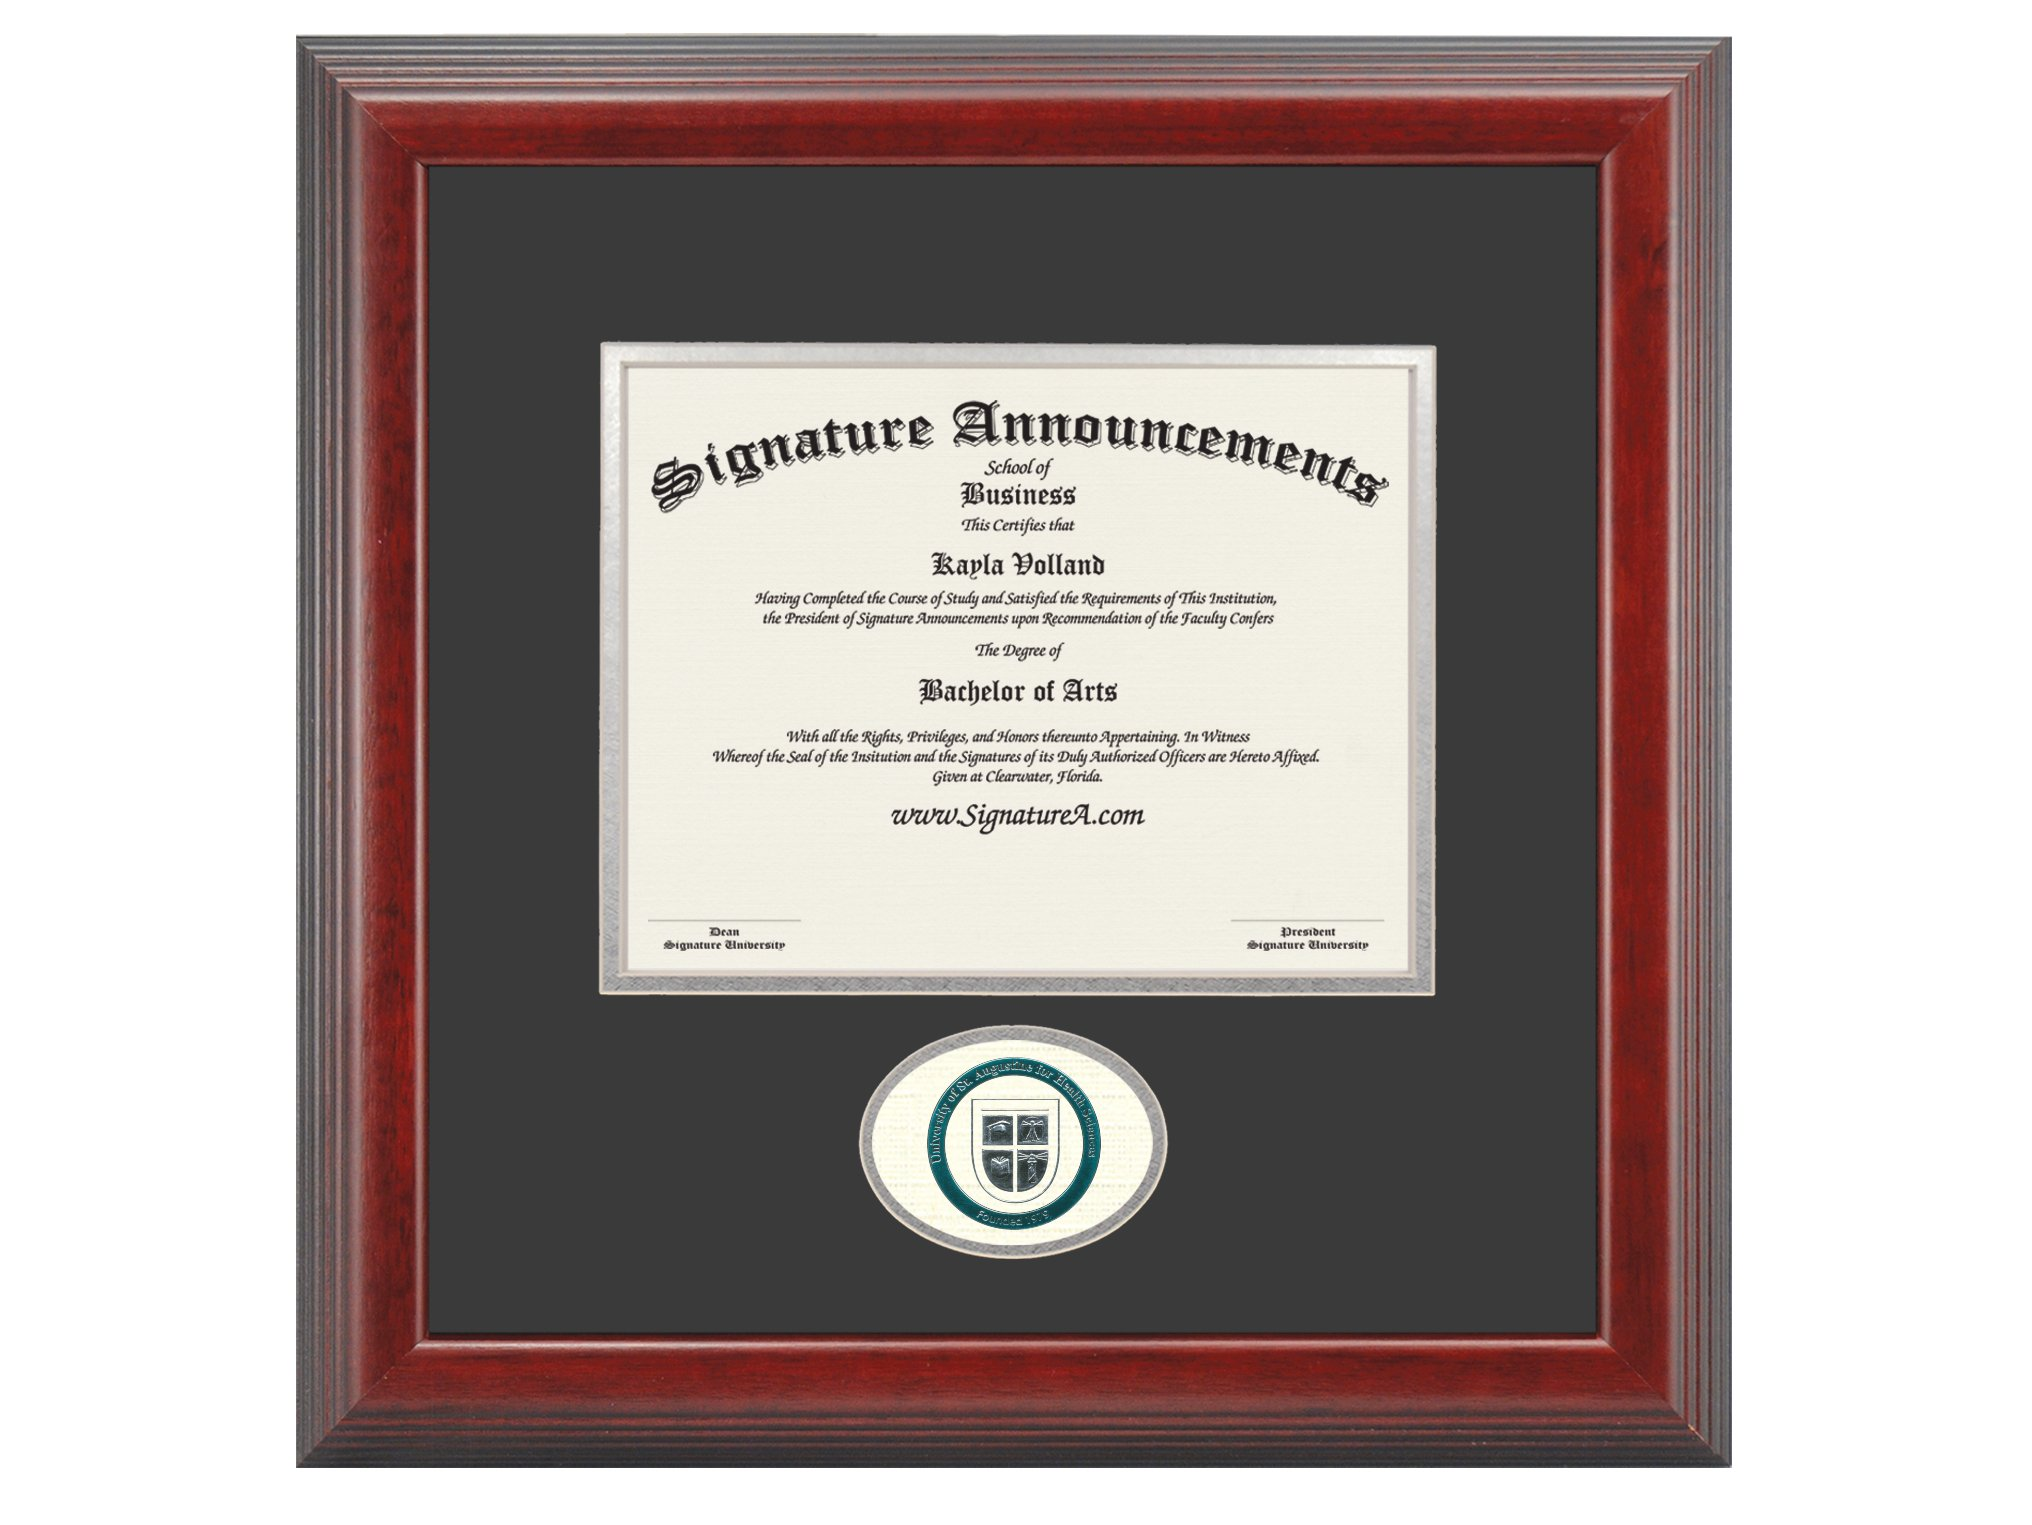 Signature Announcements University-of-St-Augustine-for-Health-Sciences Undergraduate, Graduate/Professional/Doctor Sculpted Foil Seal Diploma Frame, 16'' x 16'', Cherry